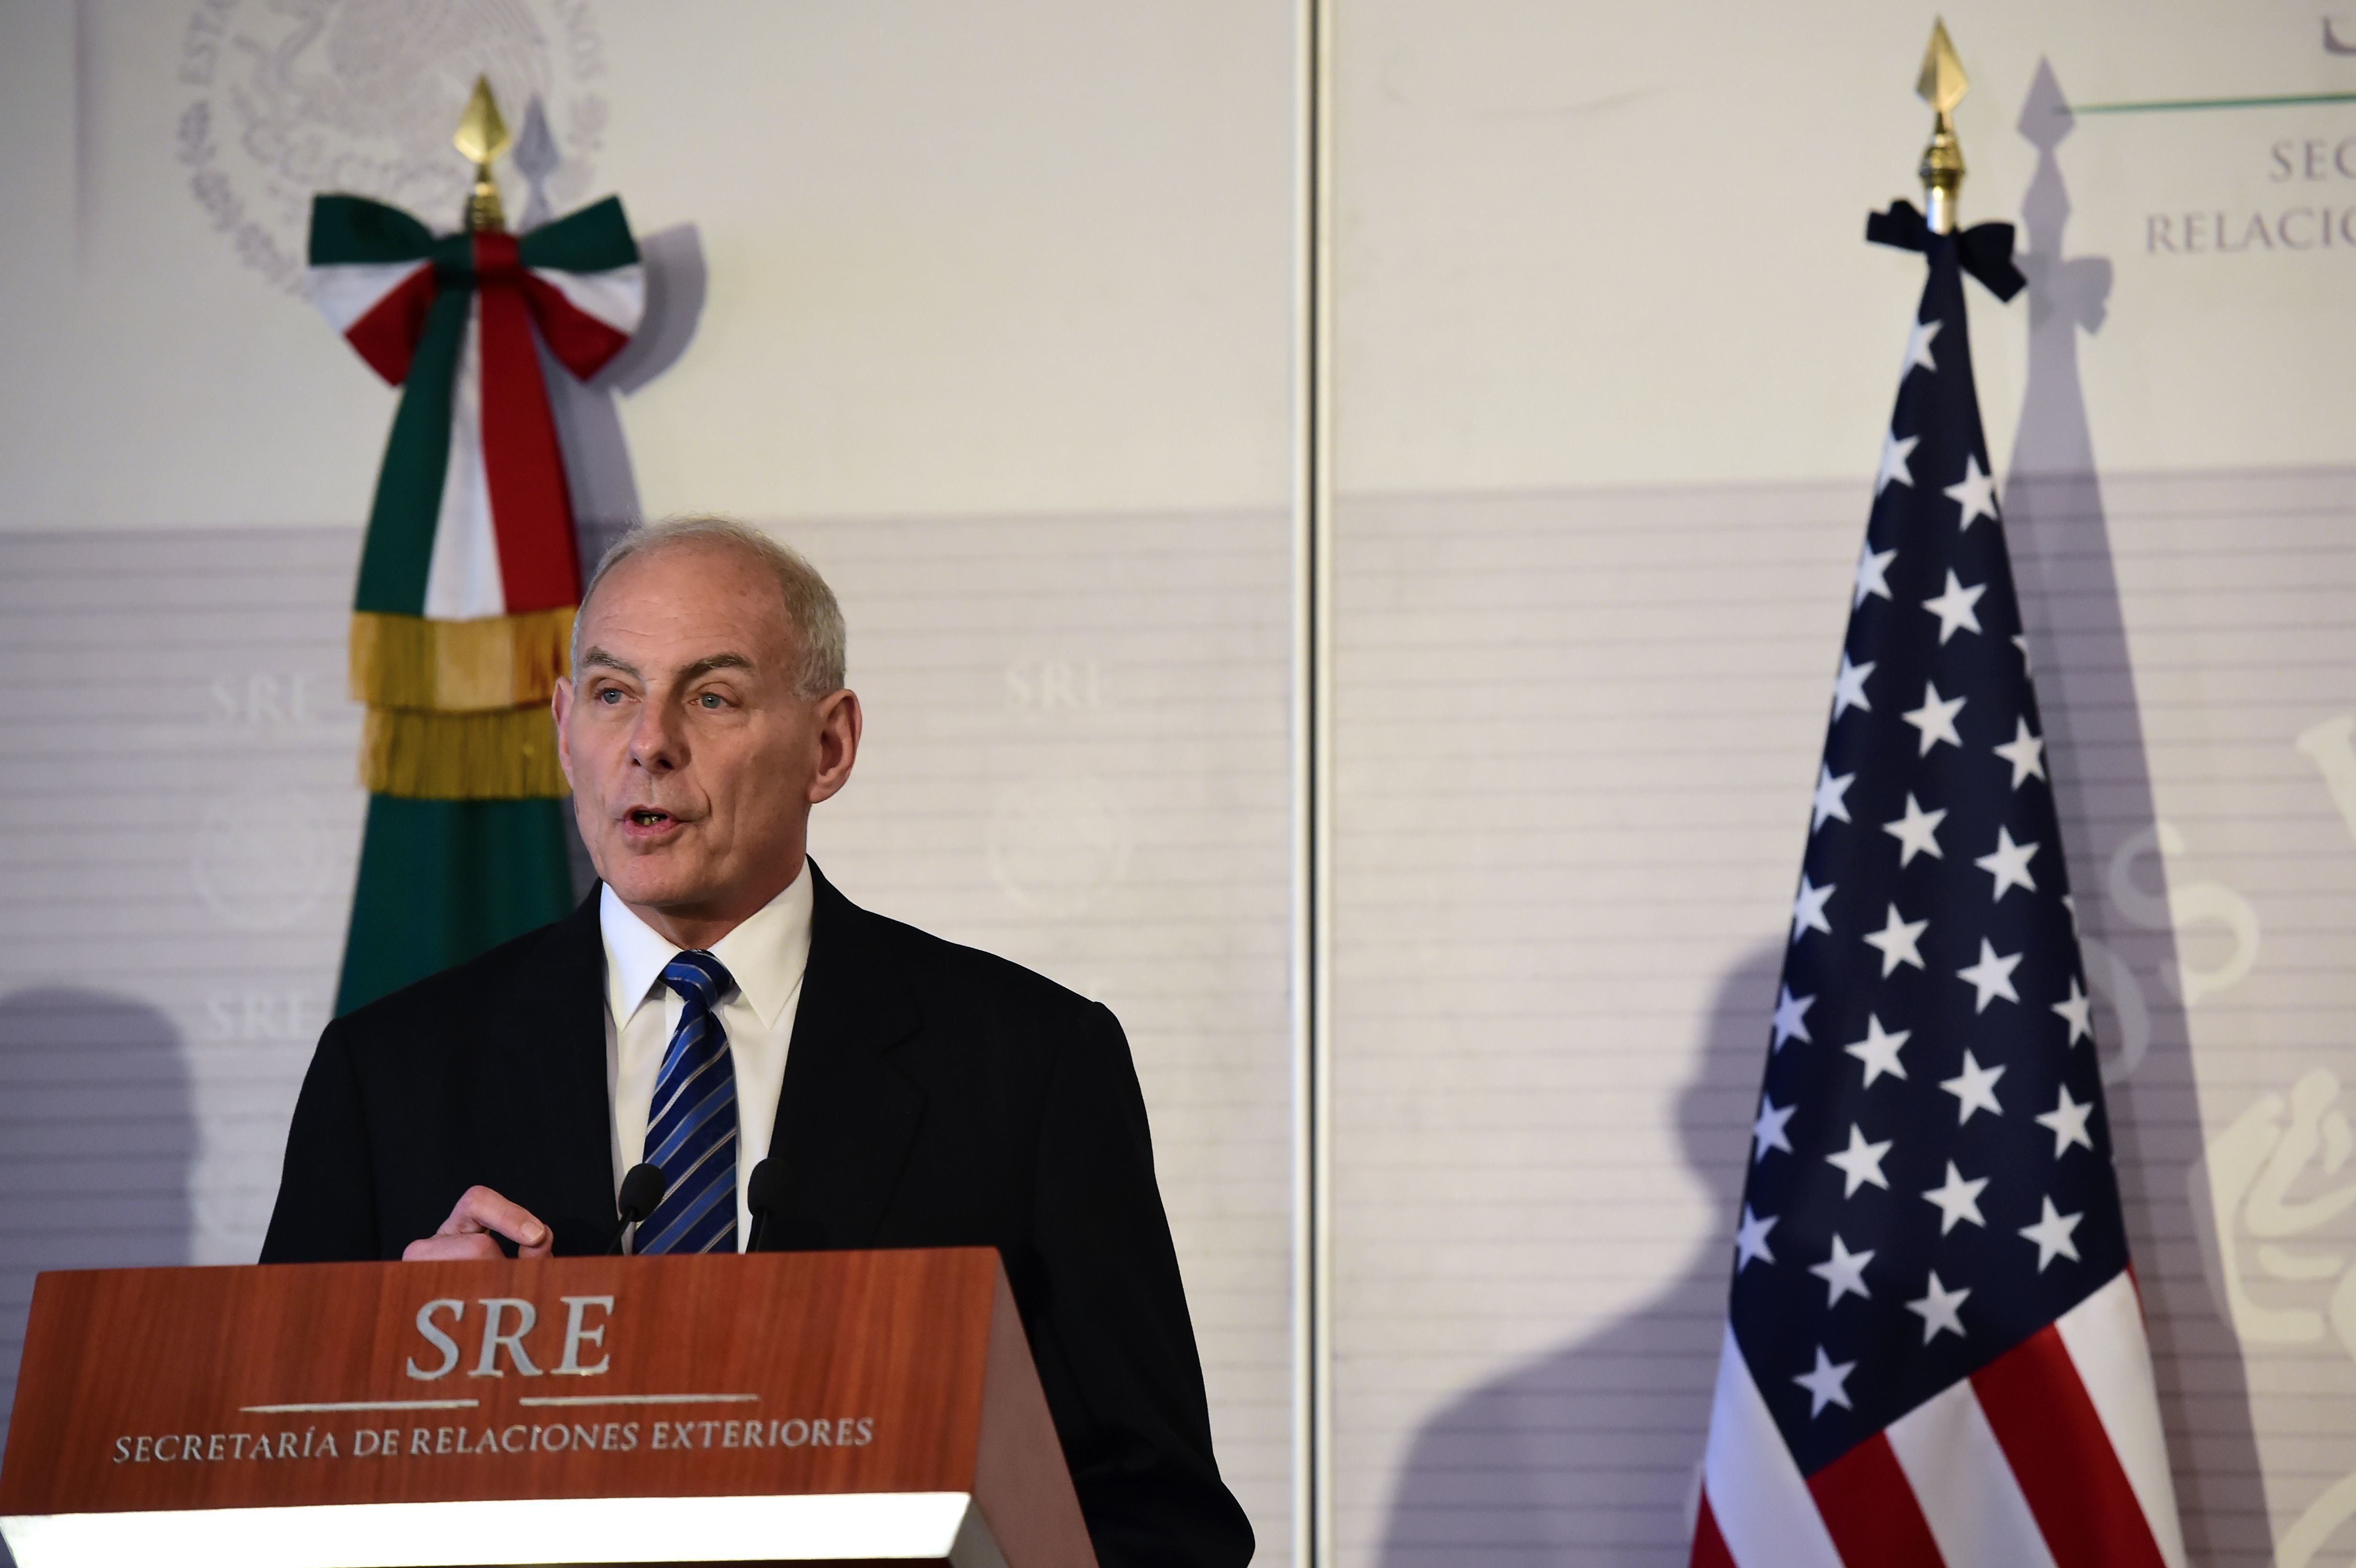 Homeland Security Secretary John Kelly speaks during a press conference in Mexico.